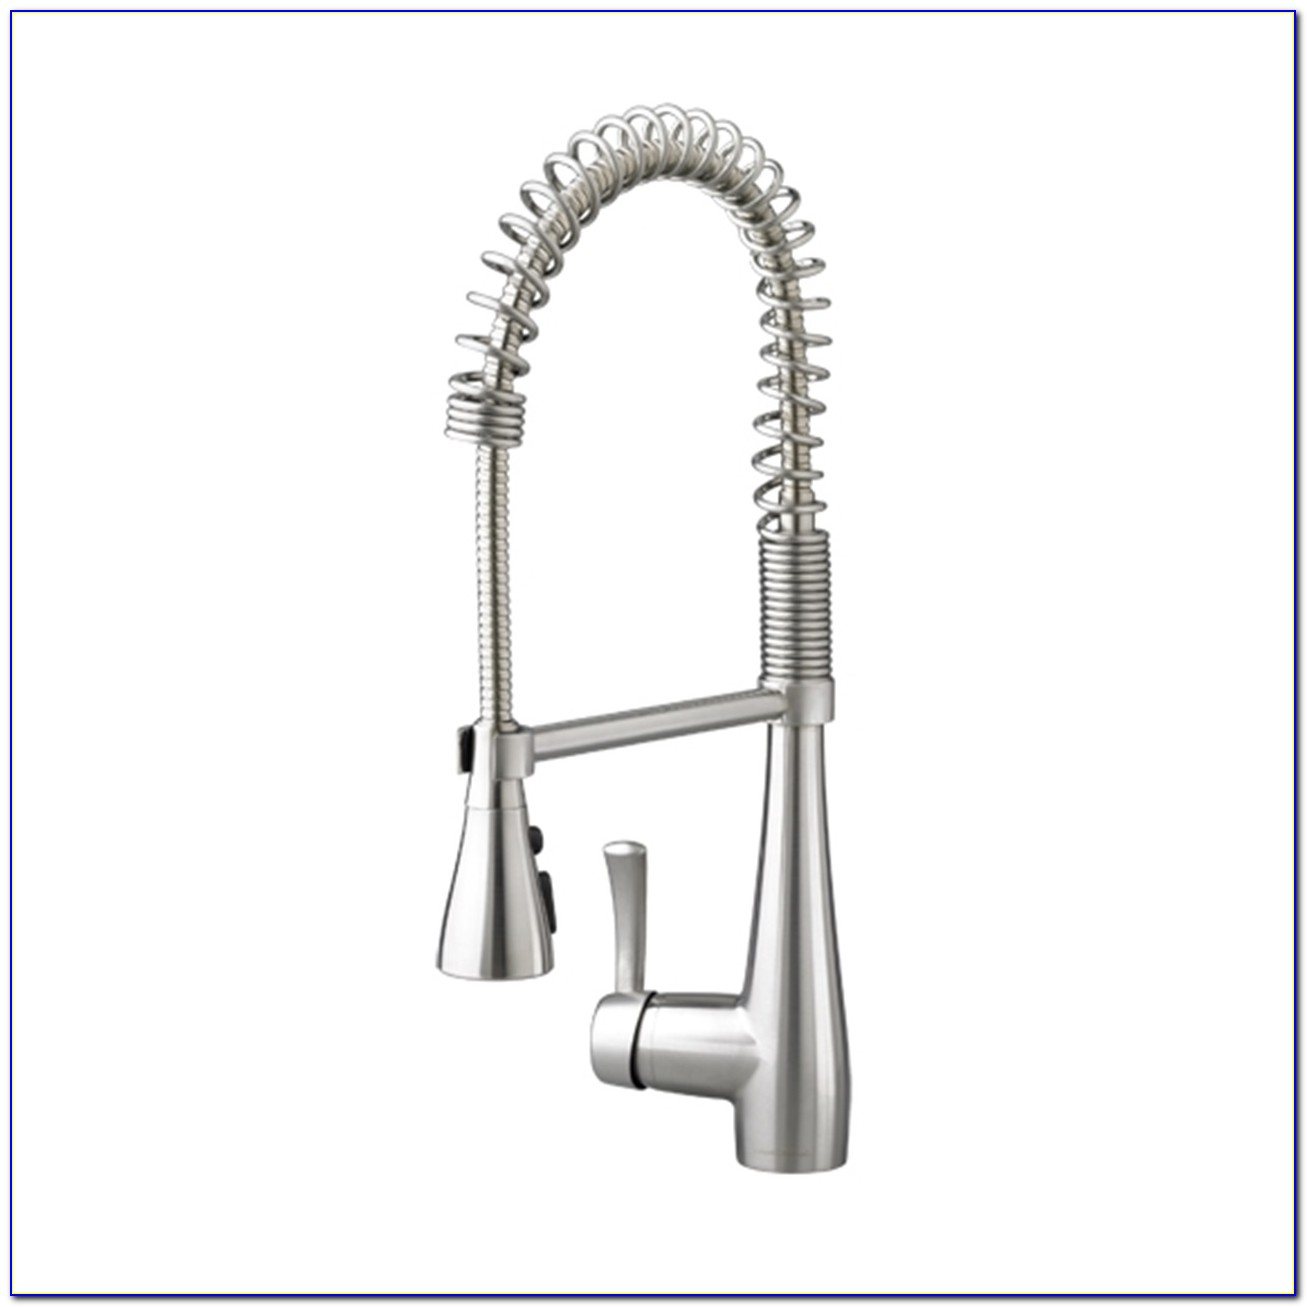 Professional Kitchen Faucets: Semi Professional Kitchen Faucets